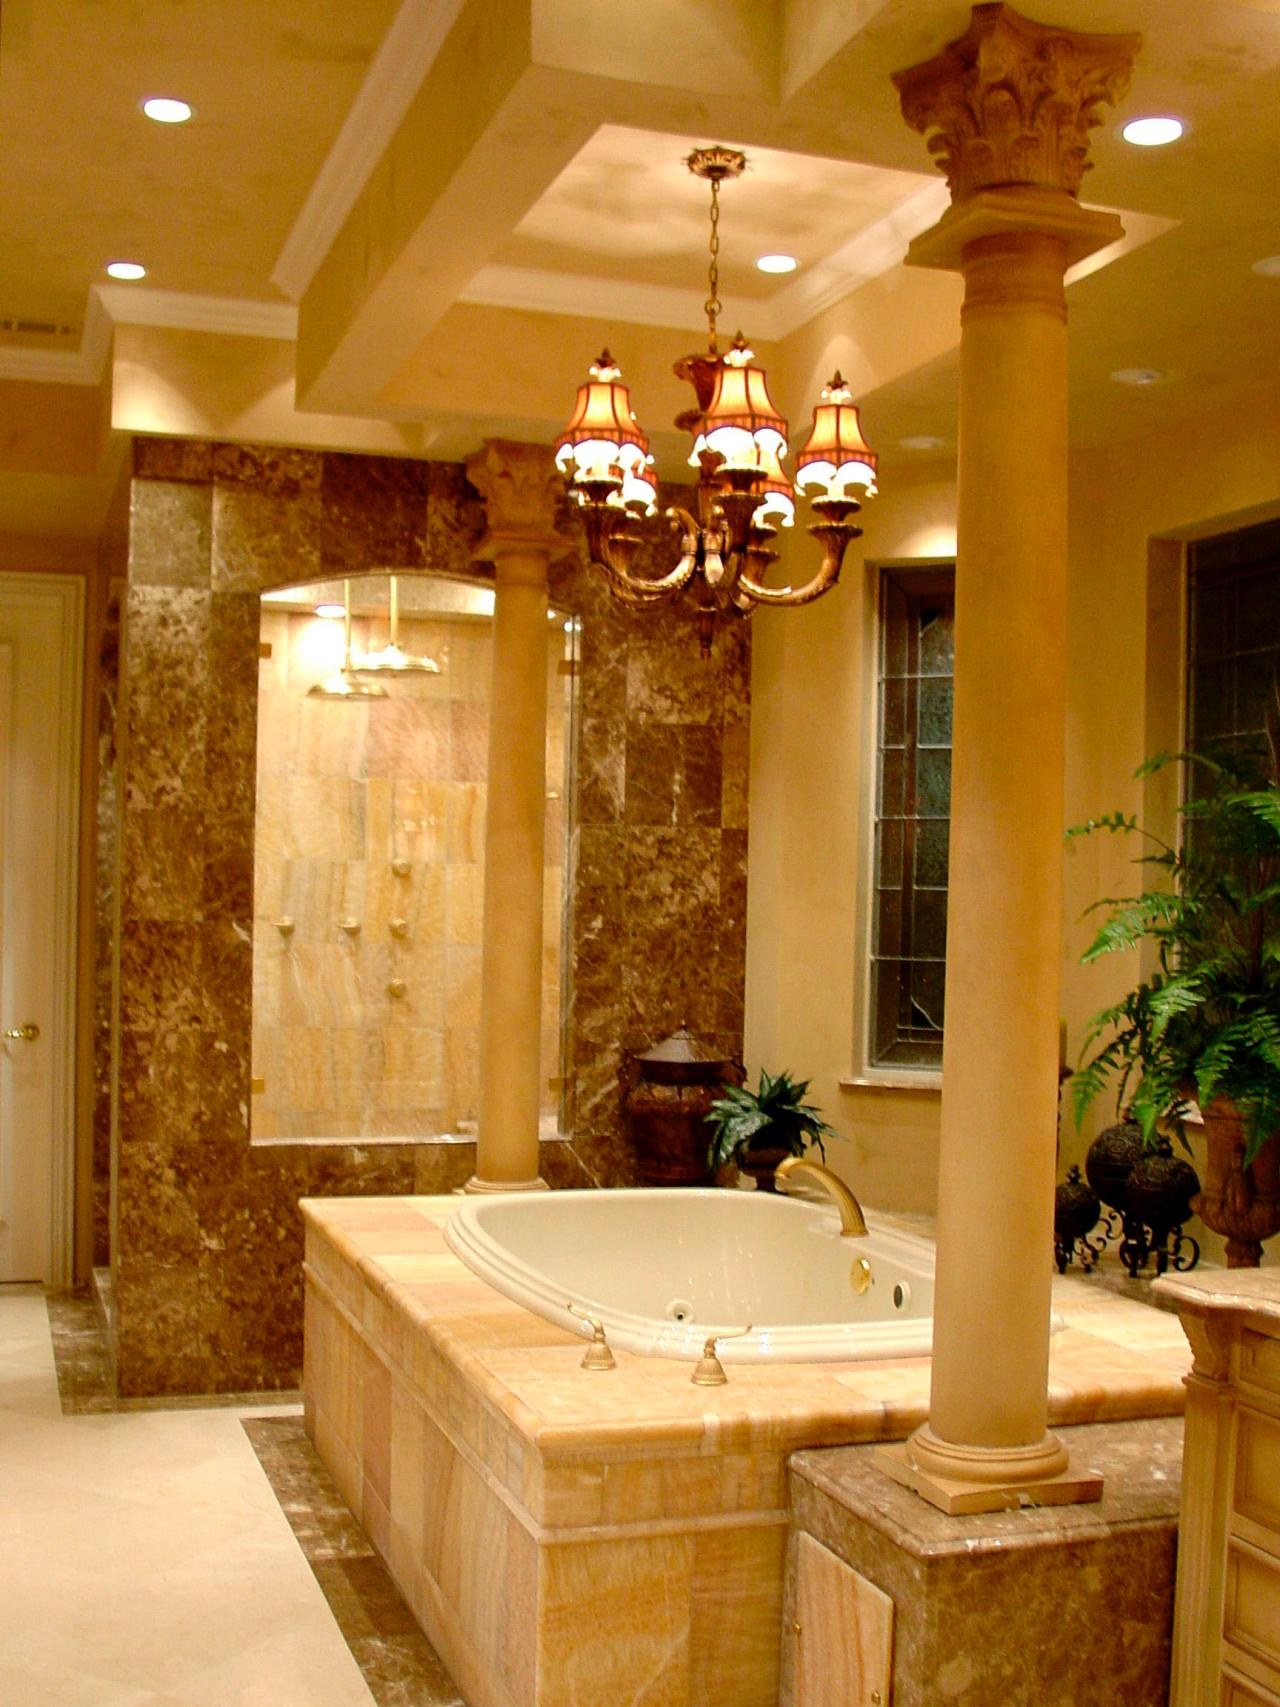 bathroom lighting fixtures. Bathroom Lighting Fixtures